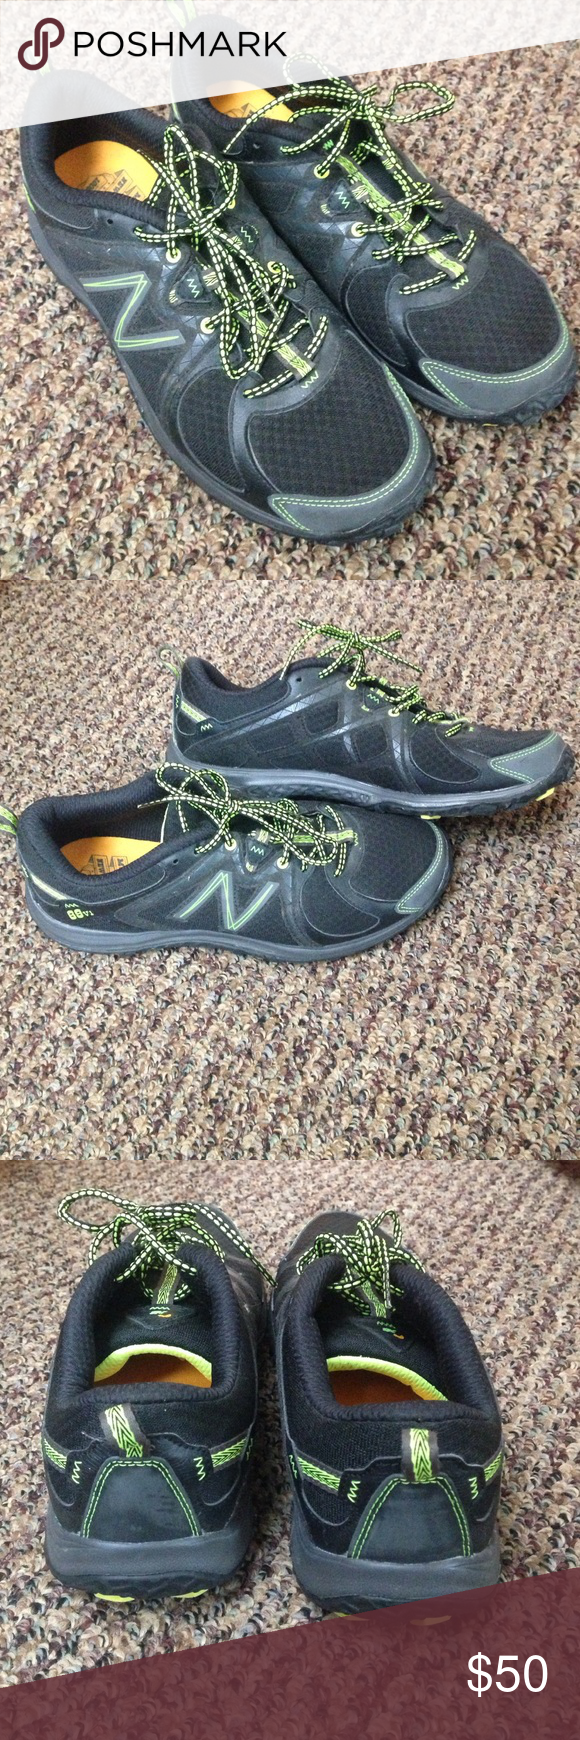 New Balance running shoes Running shoes, very lightly worn. In great condition, size 10. New Balance Shoes Athletic Shoes